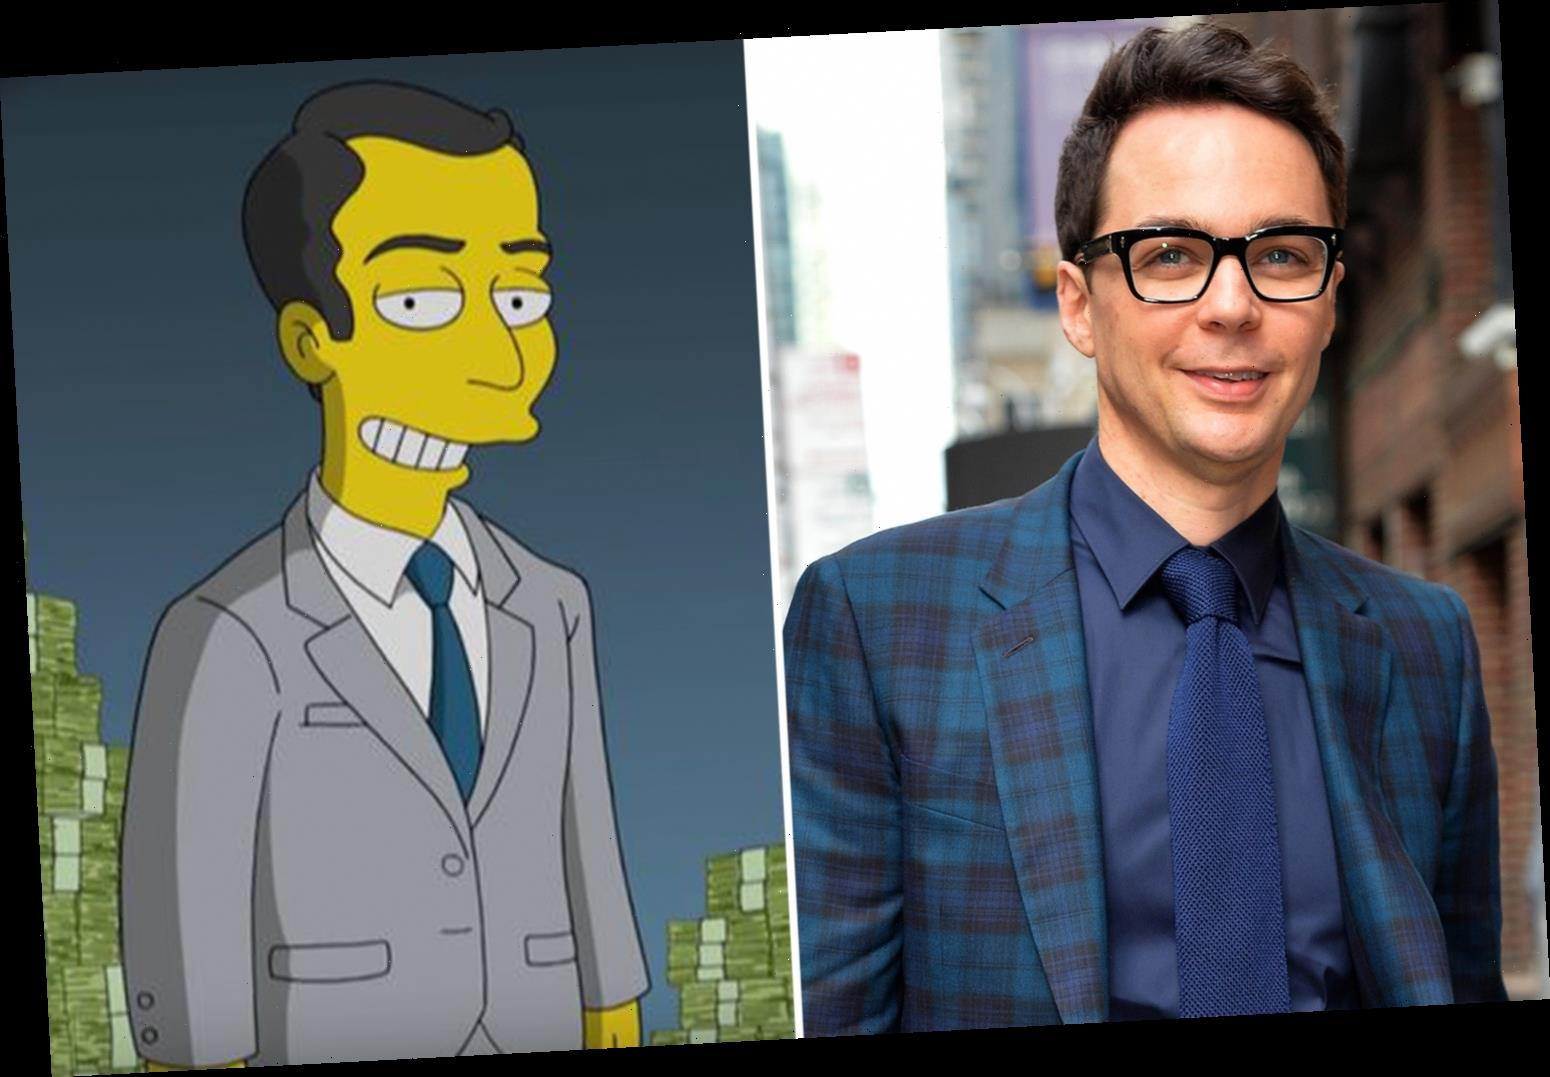 The Big Bang Theory's Jim Parsons makes long-awaited debut on The Simpsons as millionaire nerd